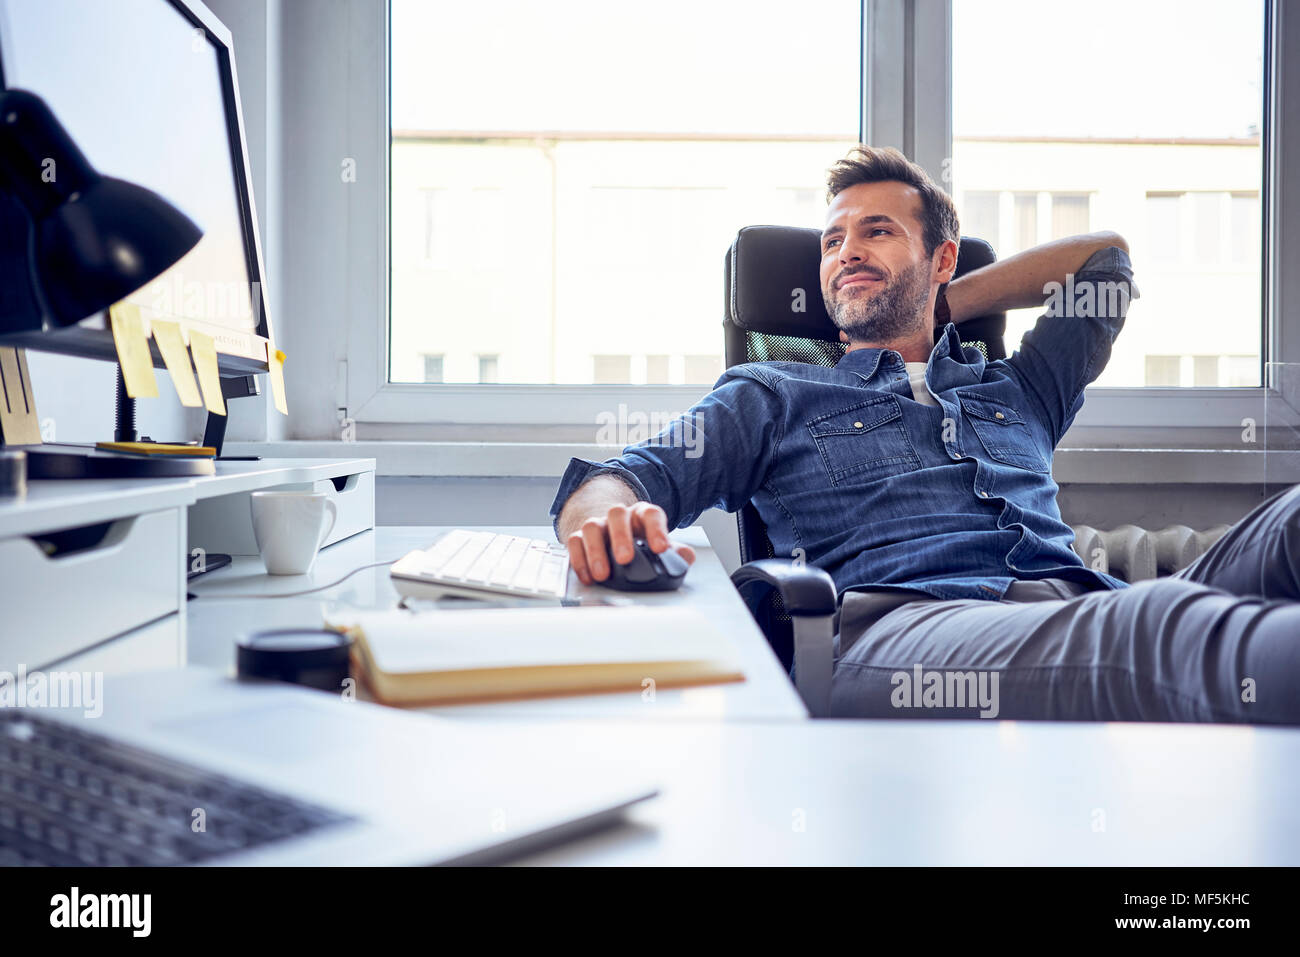 Ambiance man sitting at desk in office looking at computer screen Photo Stock